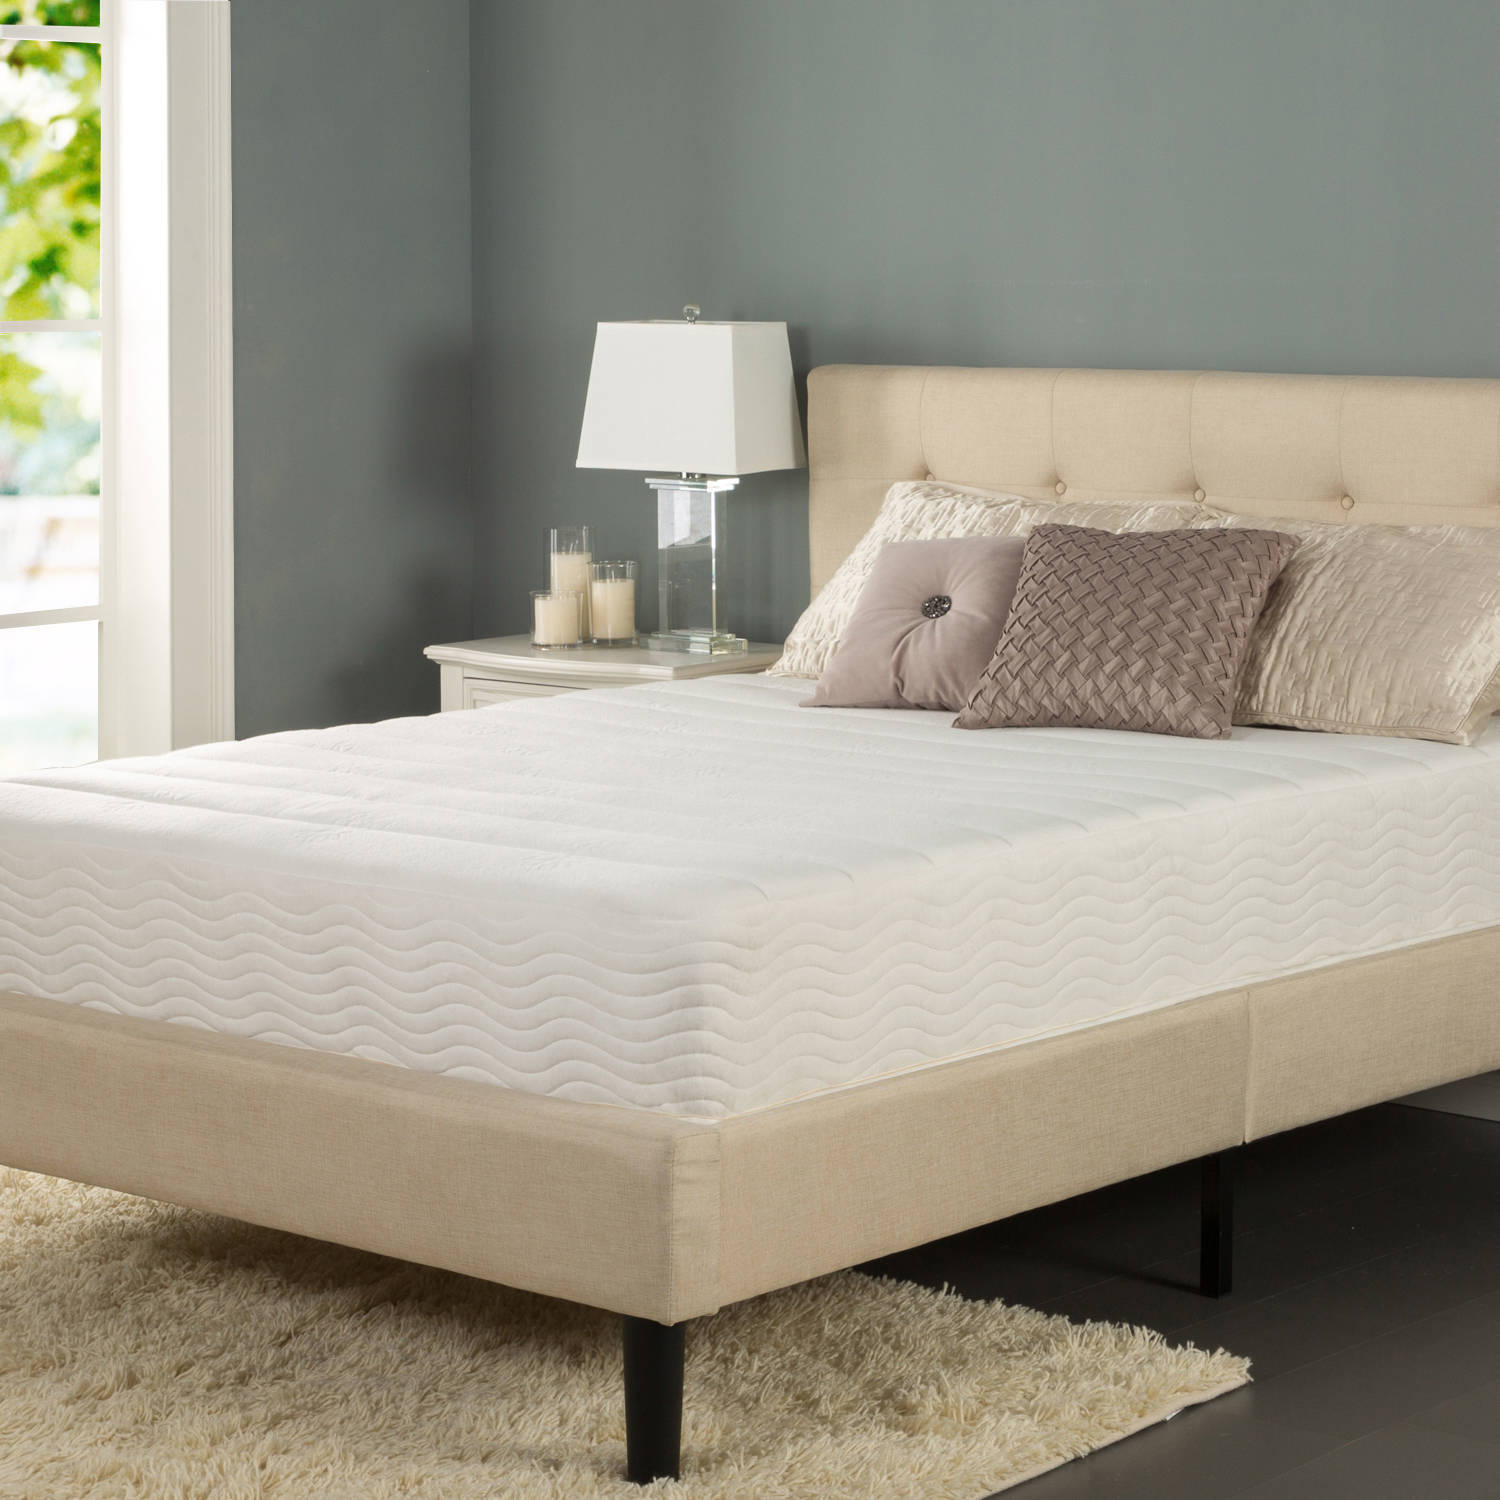 This is our allswell mattress review in which we discuss the feel and firmness of all three models: sleeper sofa mattresses walmart com